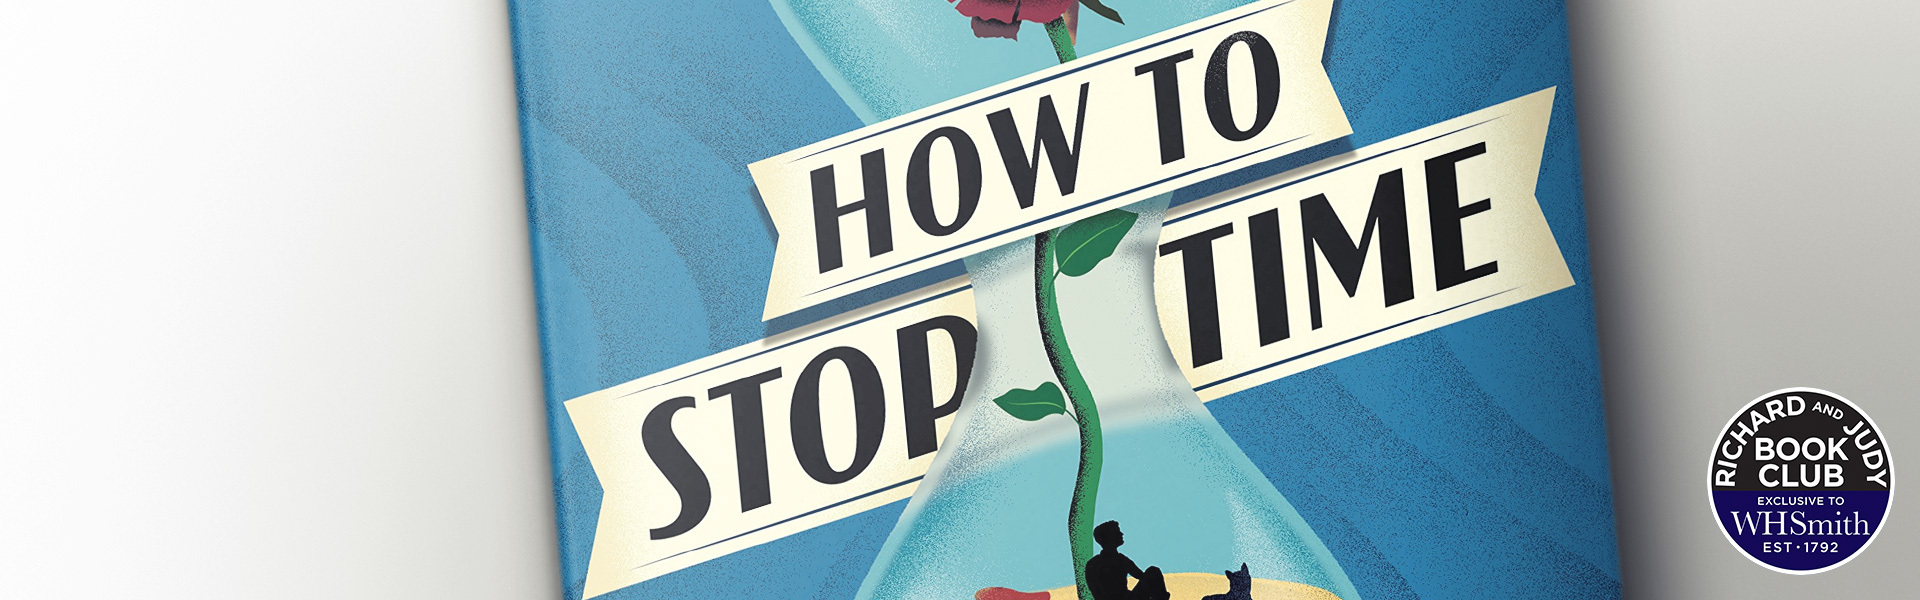 Richard and Judy Introduce How to Stop Time by Matt Haig